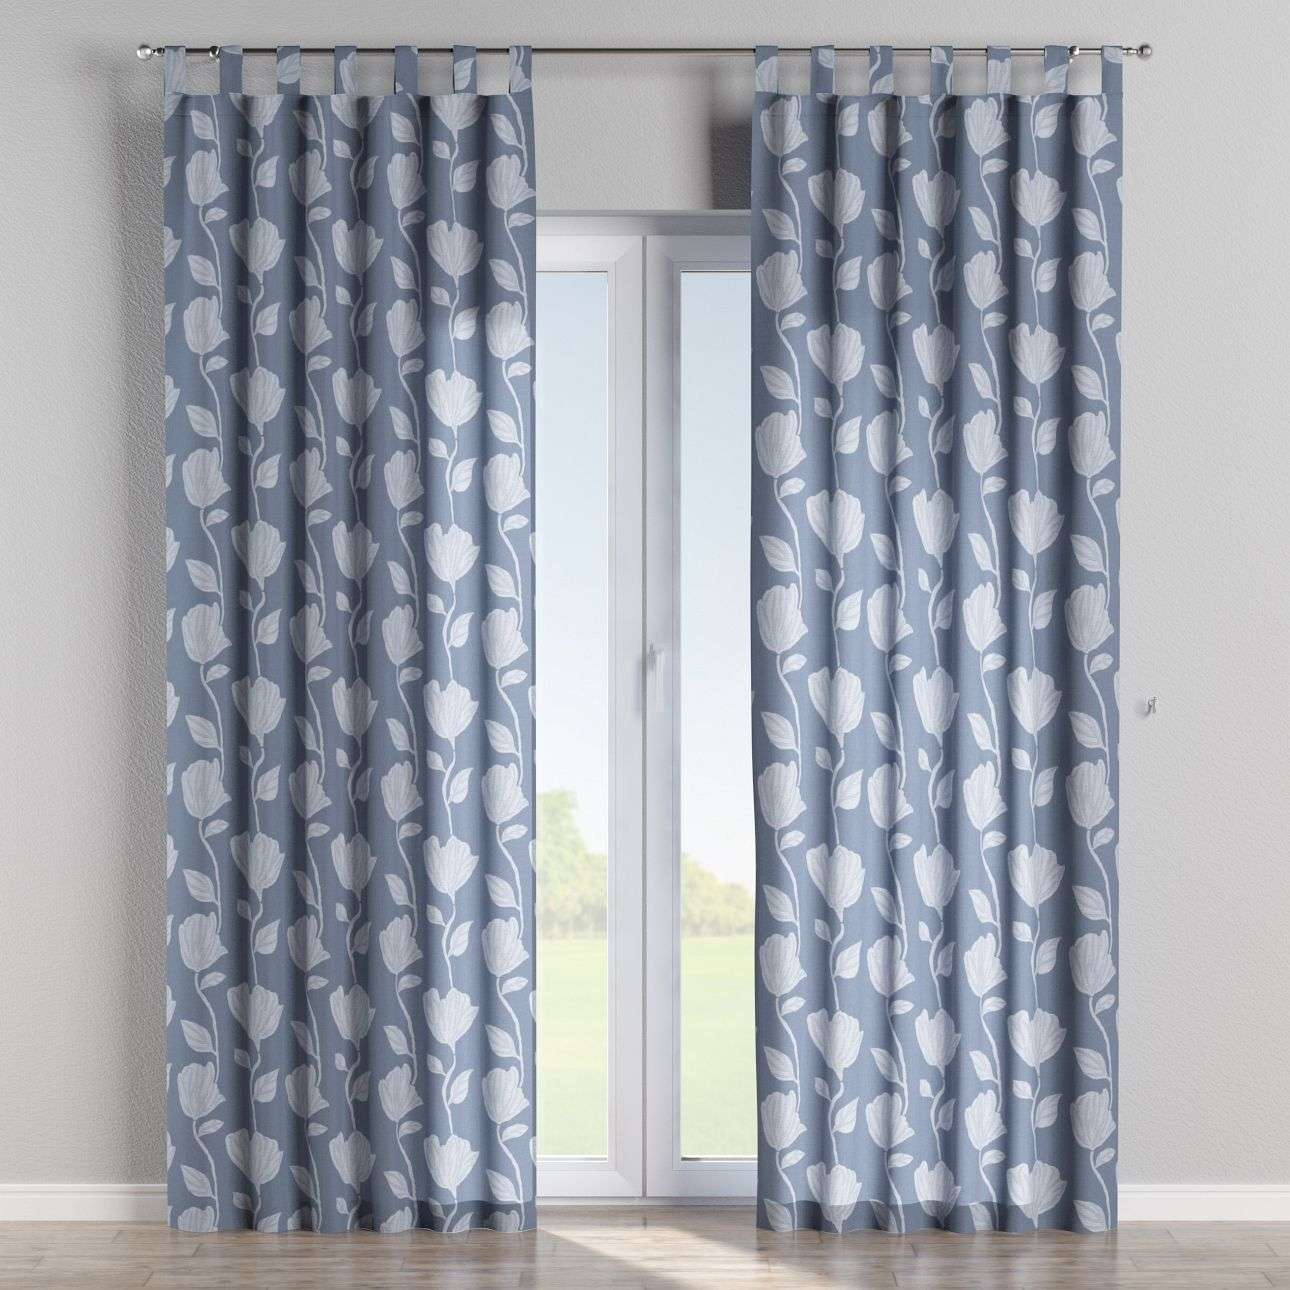 Tab top curtains 130 x 260 cm (51 x 102 inch) in collection Venice, fabric: 140-61